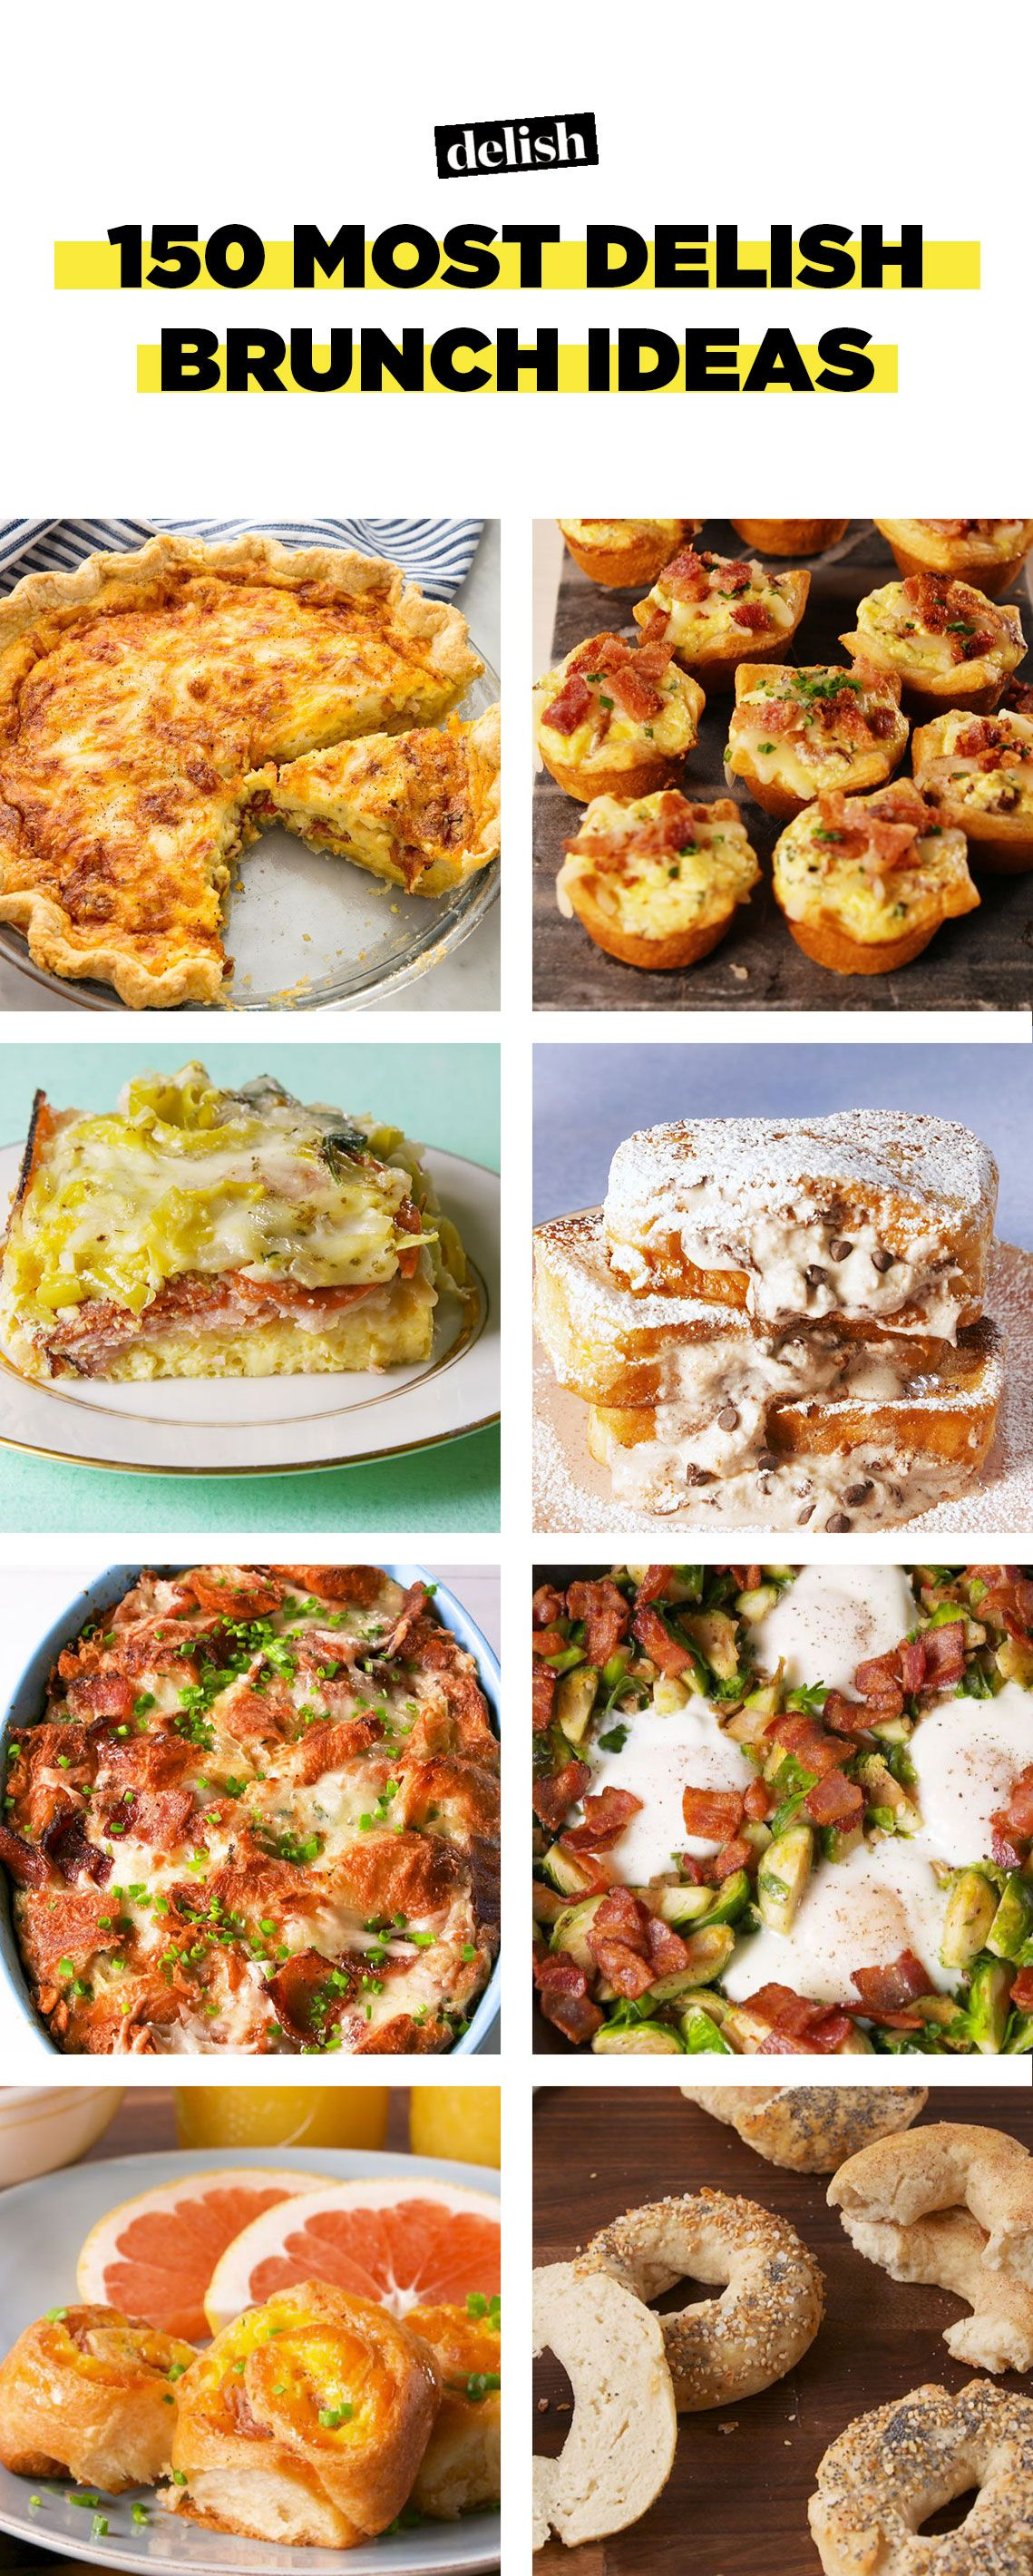 100+ brunch menu recipes - ideas for easy brunch food